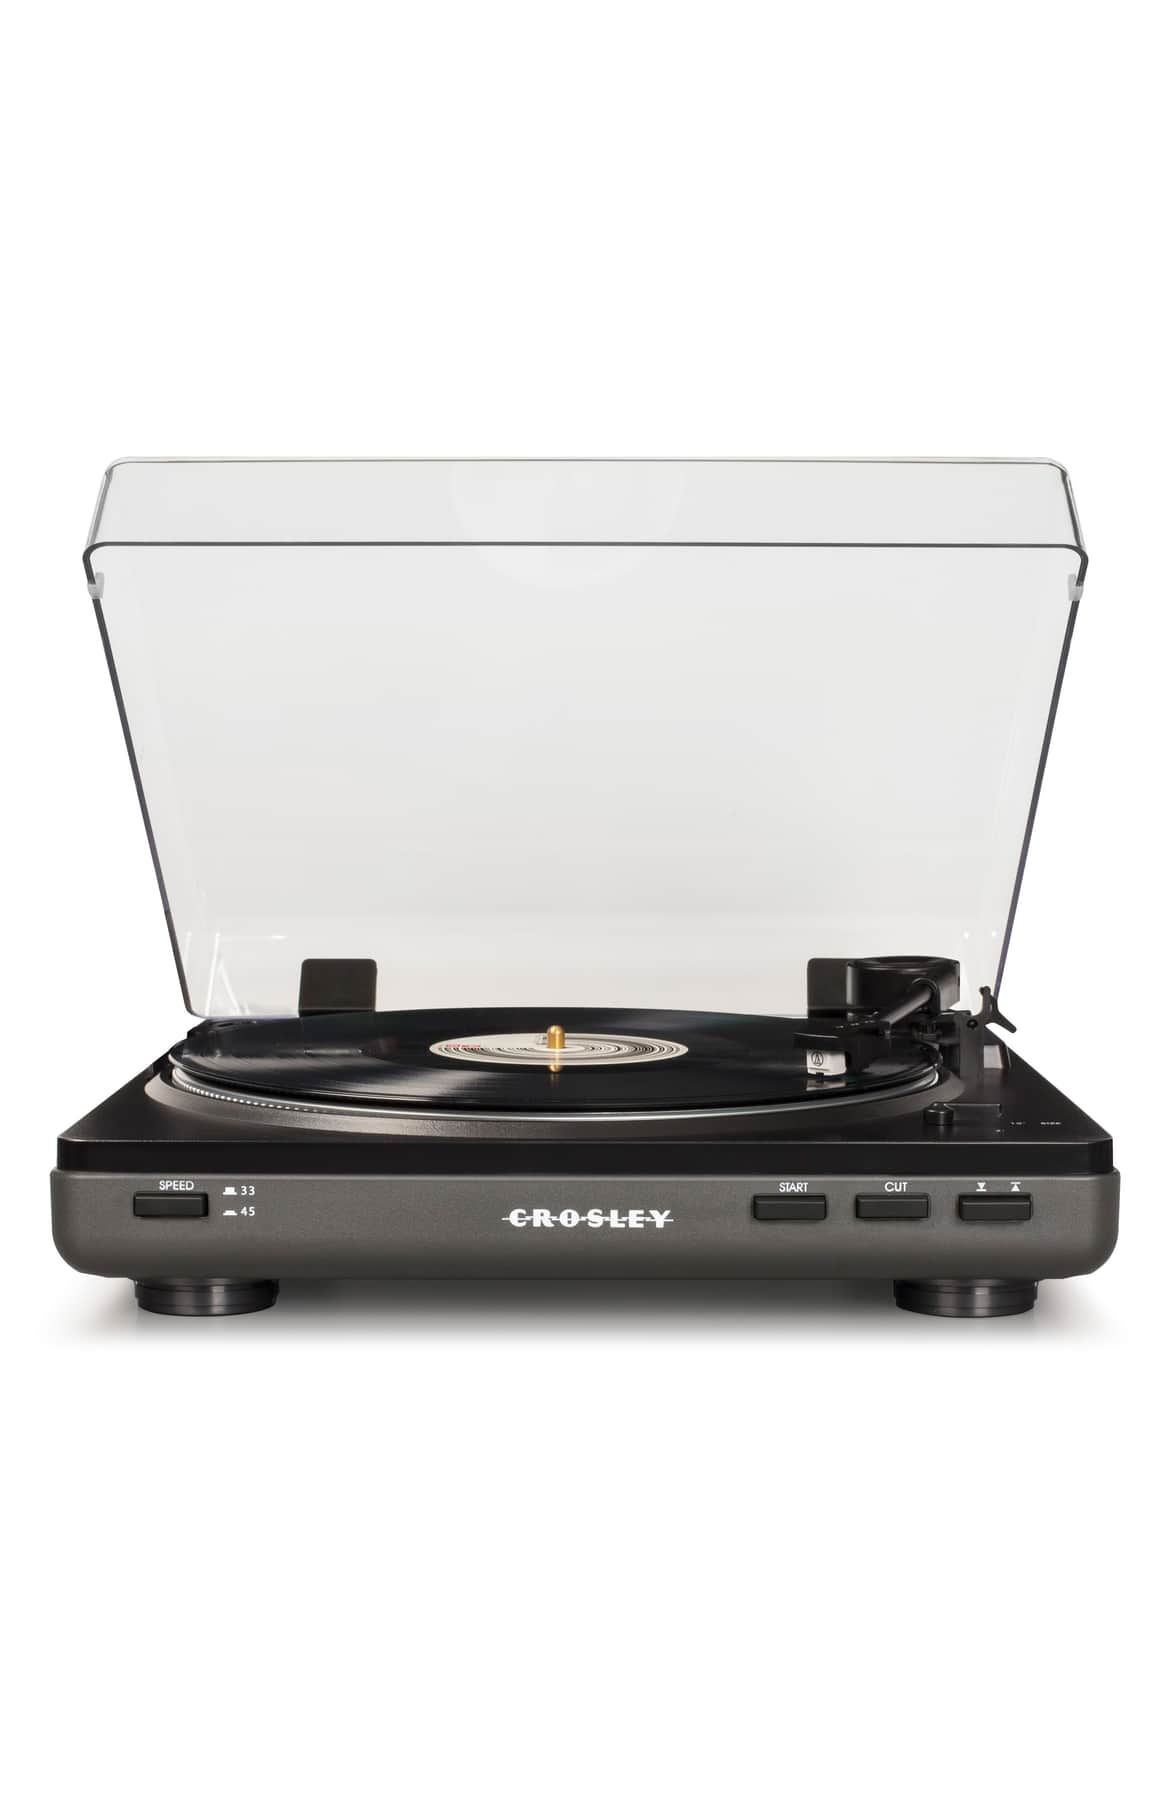 <p>A classic belt-driven turntable boasts modern capabilities with a vintage-inspired aesthetic.{&nbsp;}Price $129.95. (Image: Nordstrom){&nbsp;}</p><p></p>